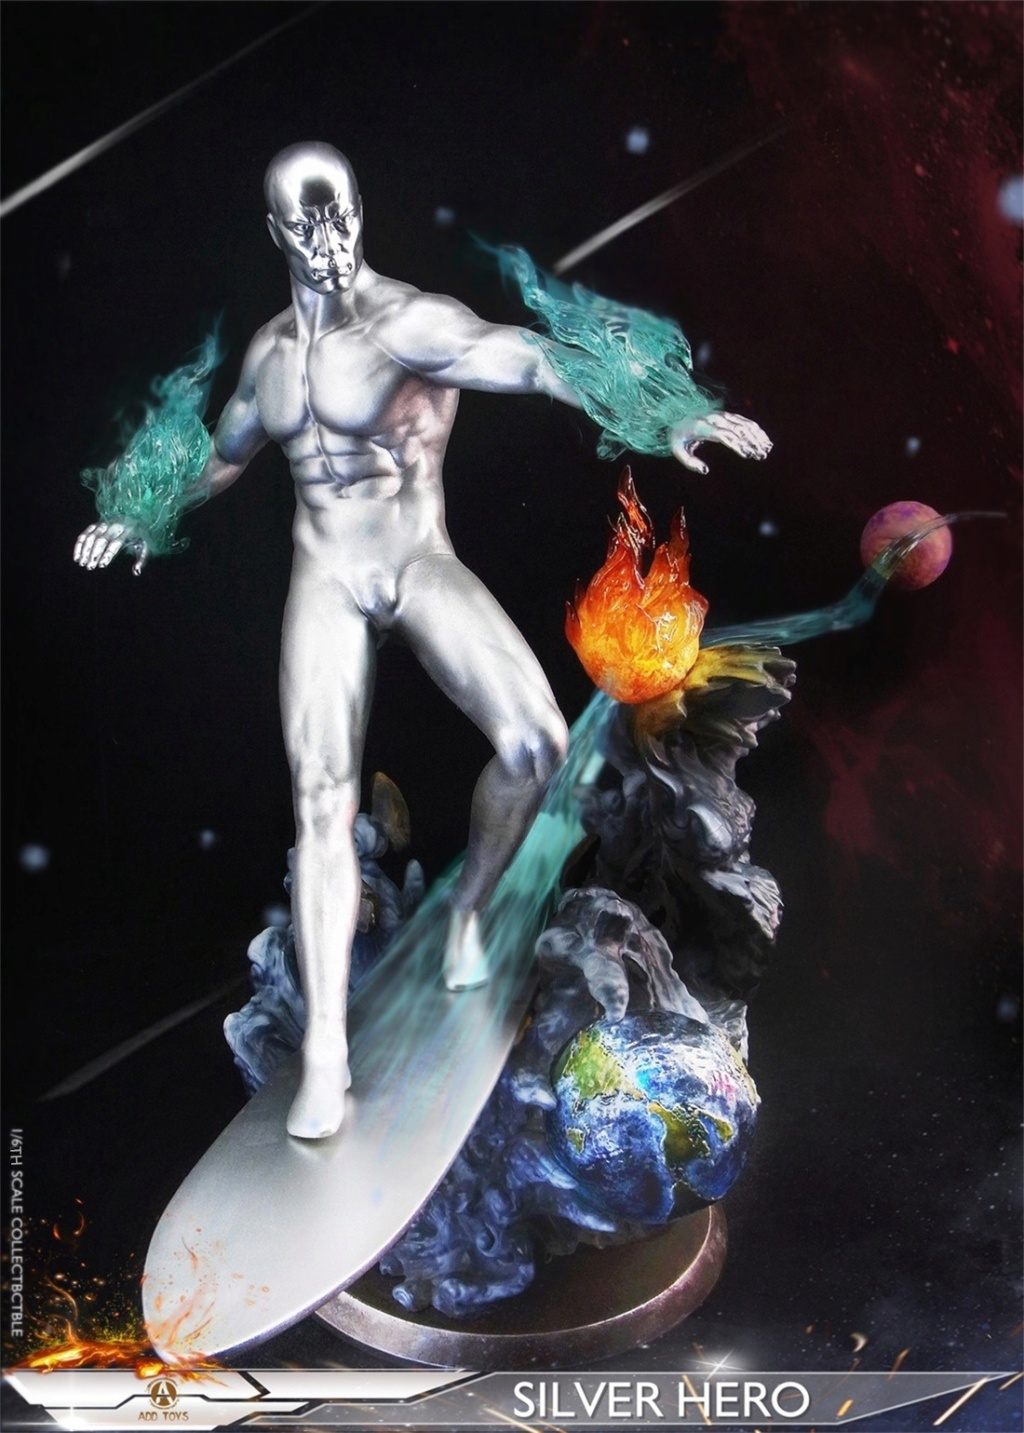 NEW PRODUCT: ADD Toys: 1/6 scale Silver Man/Silver Hero AD05 5deccd10